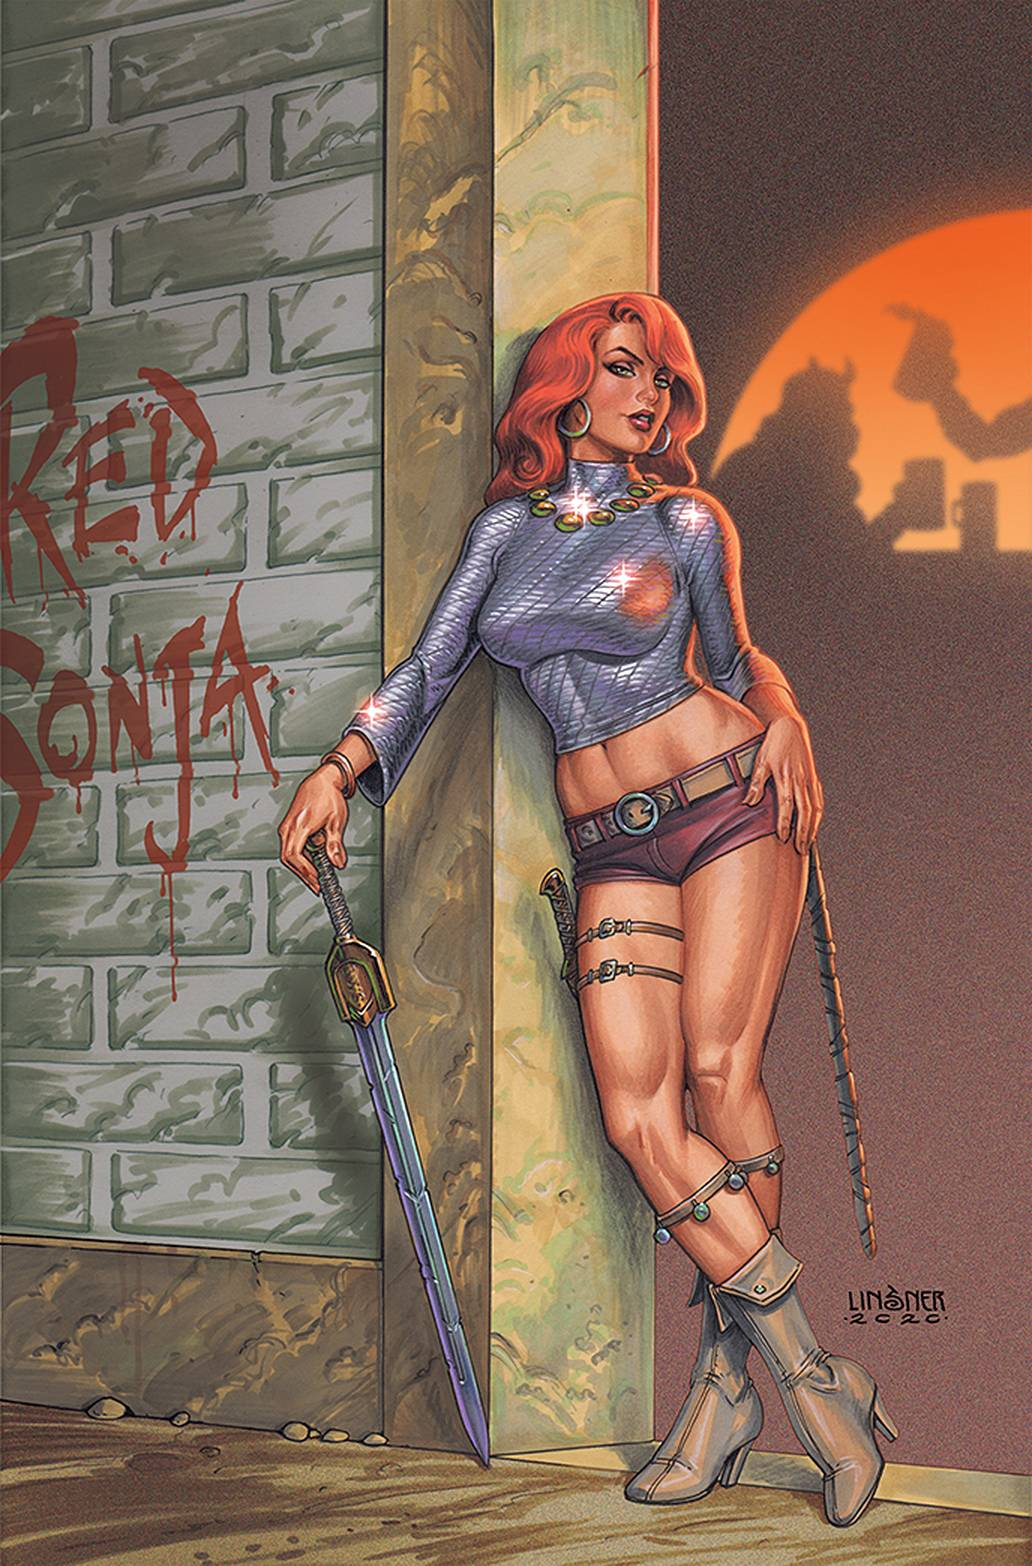 RED SONJA #25 LINSNER LTD VIRGIN CVR